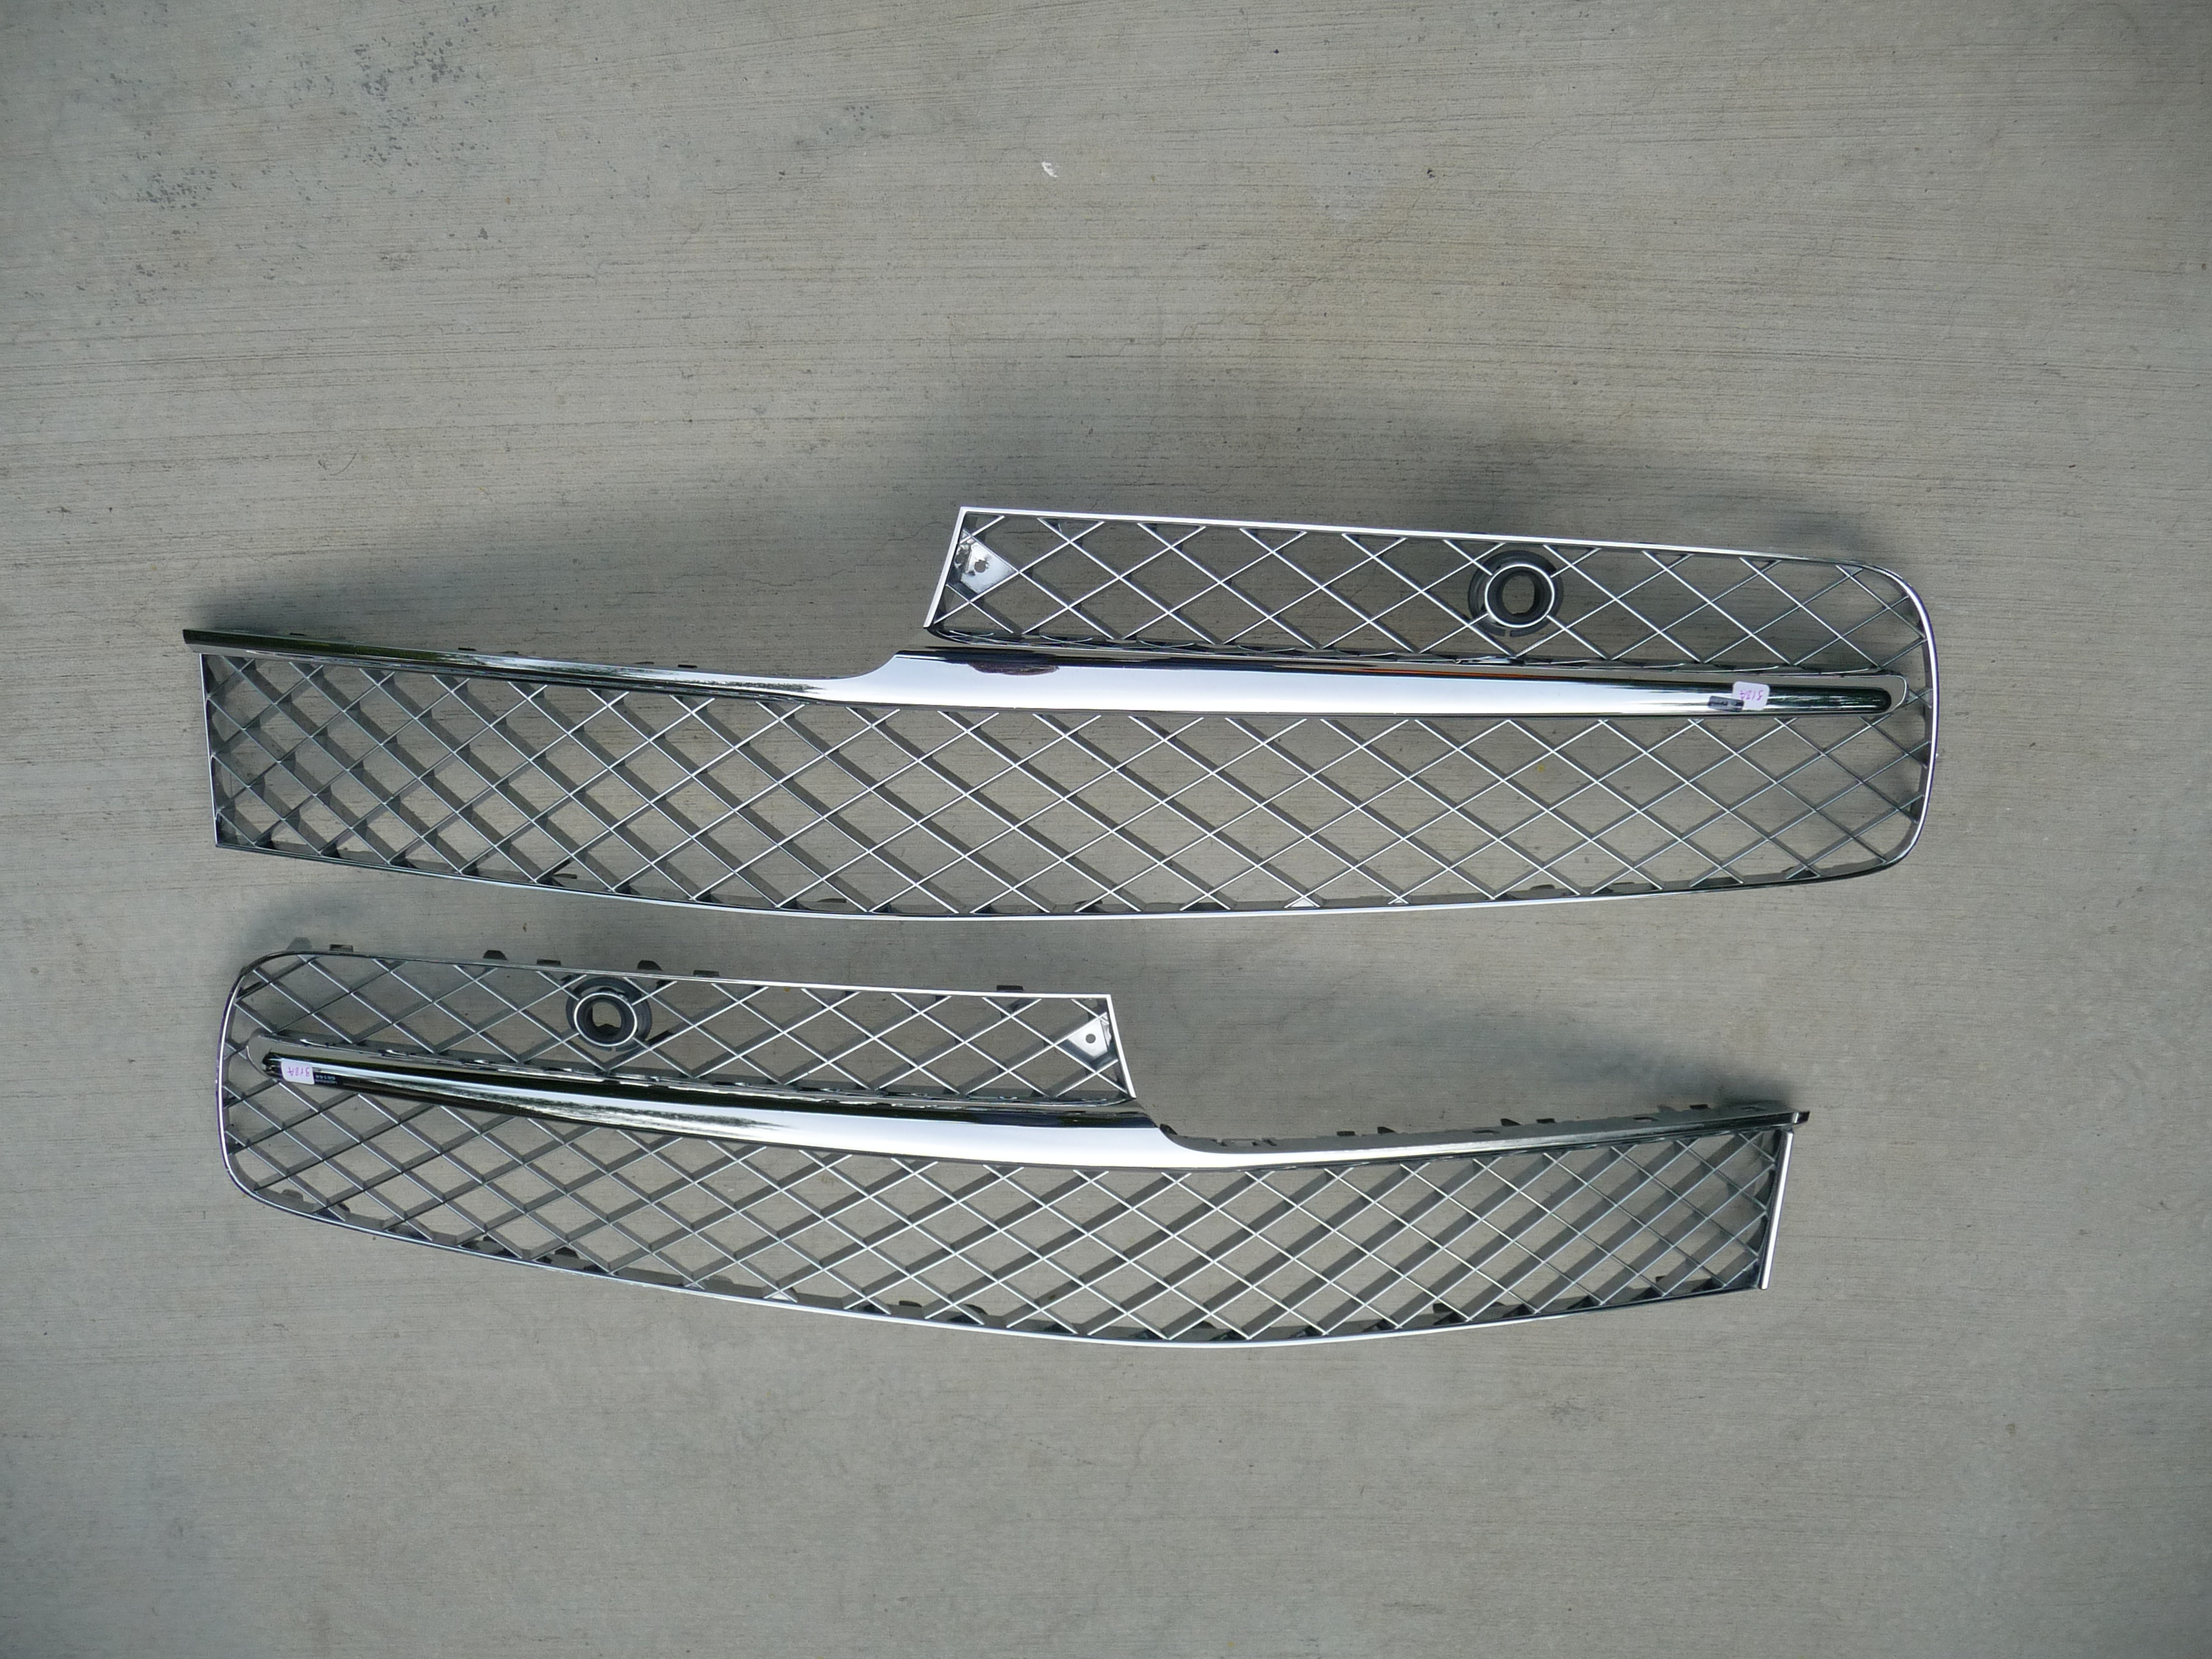 Bentley Flying Spur Sedan 4 Door Front Grille Grill Chrome Left and Right - Used Auto Parts Store | LA Global Parts